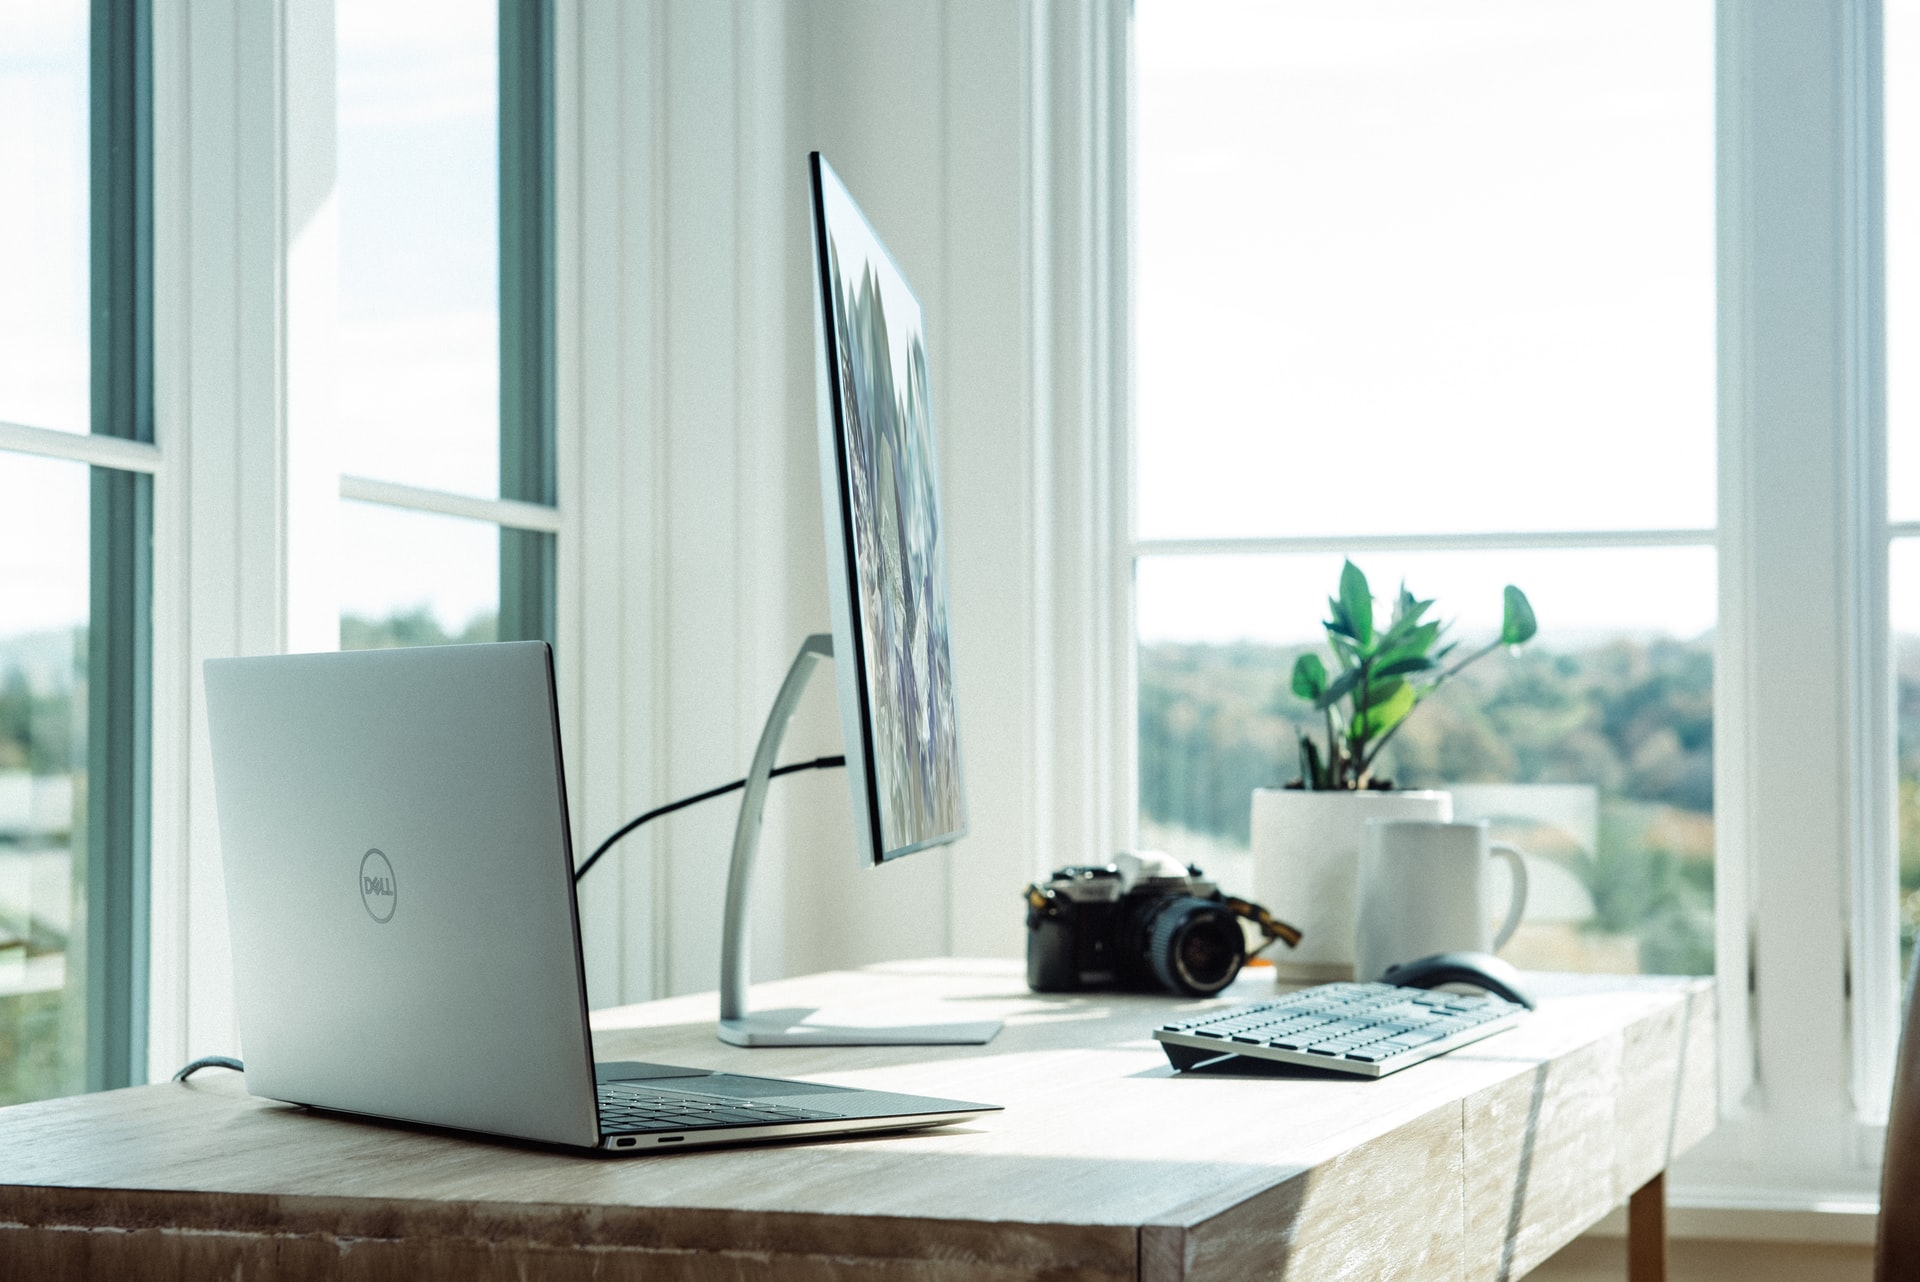 8 Tips on Choosing a Home in San Diego for Remote Workers